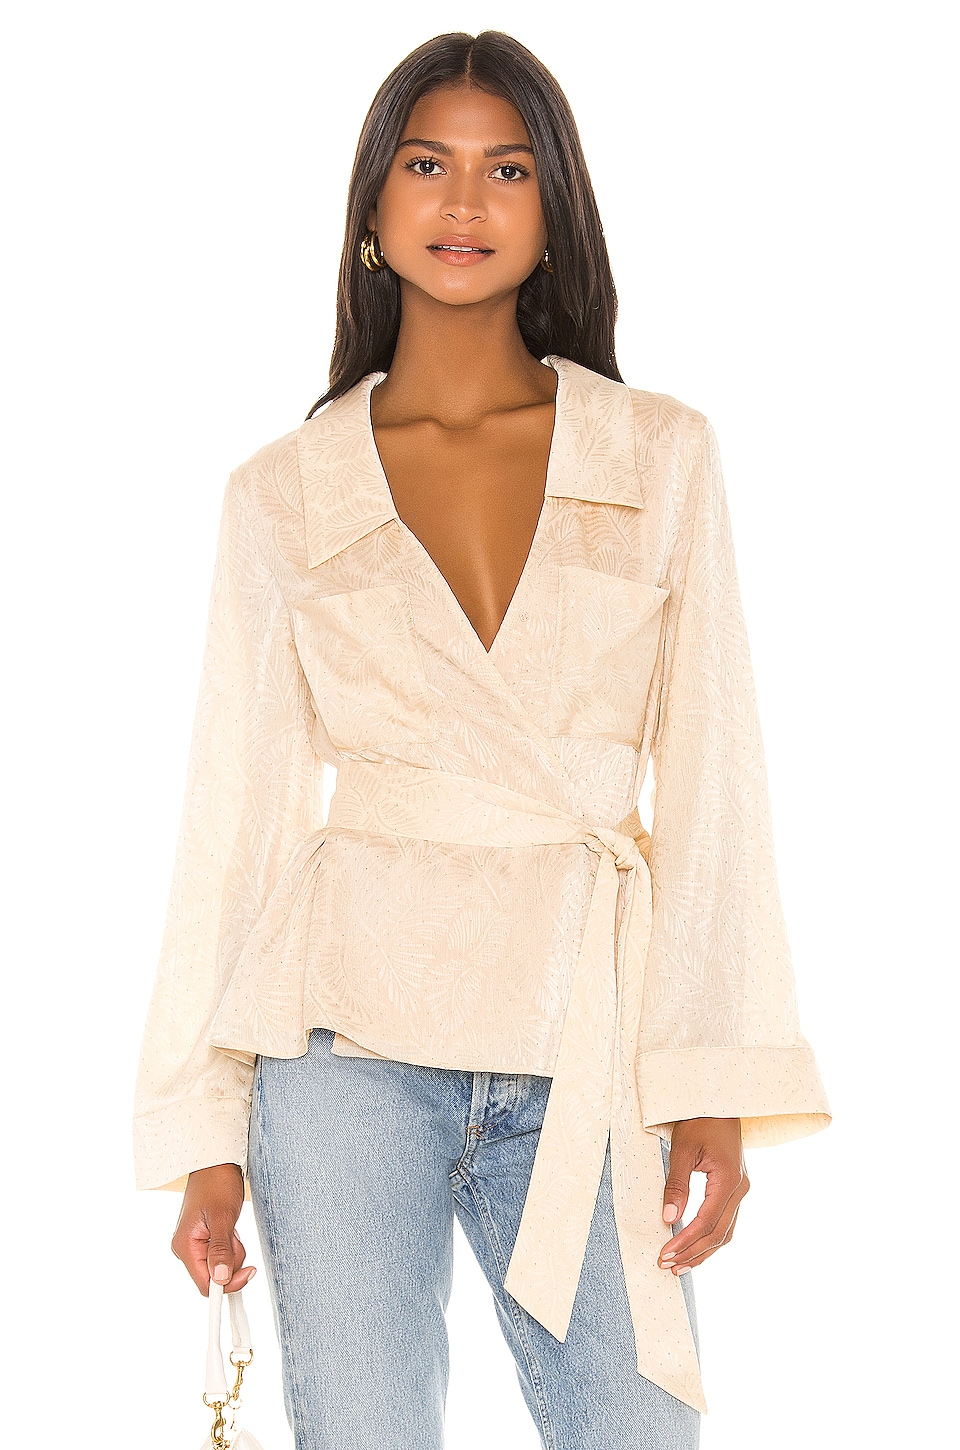 House of Harlow 1960 X REVOLVE Layla Blouse in Cream